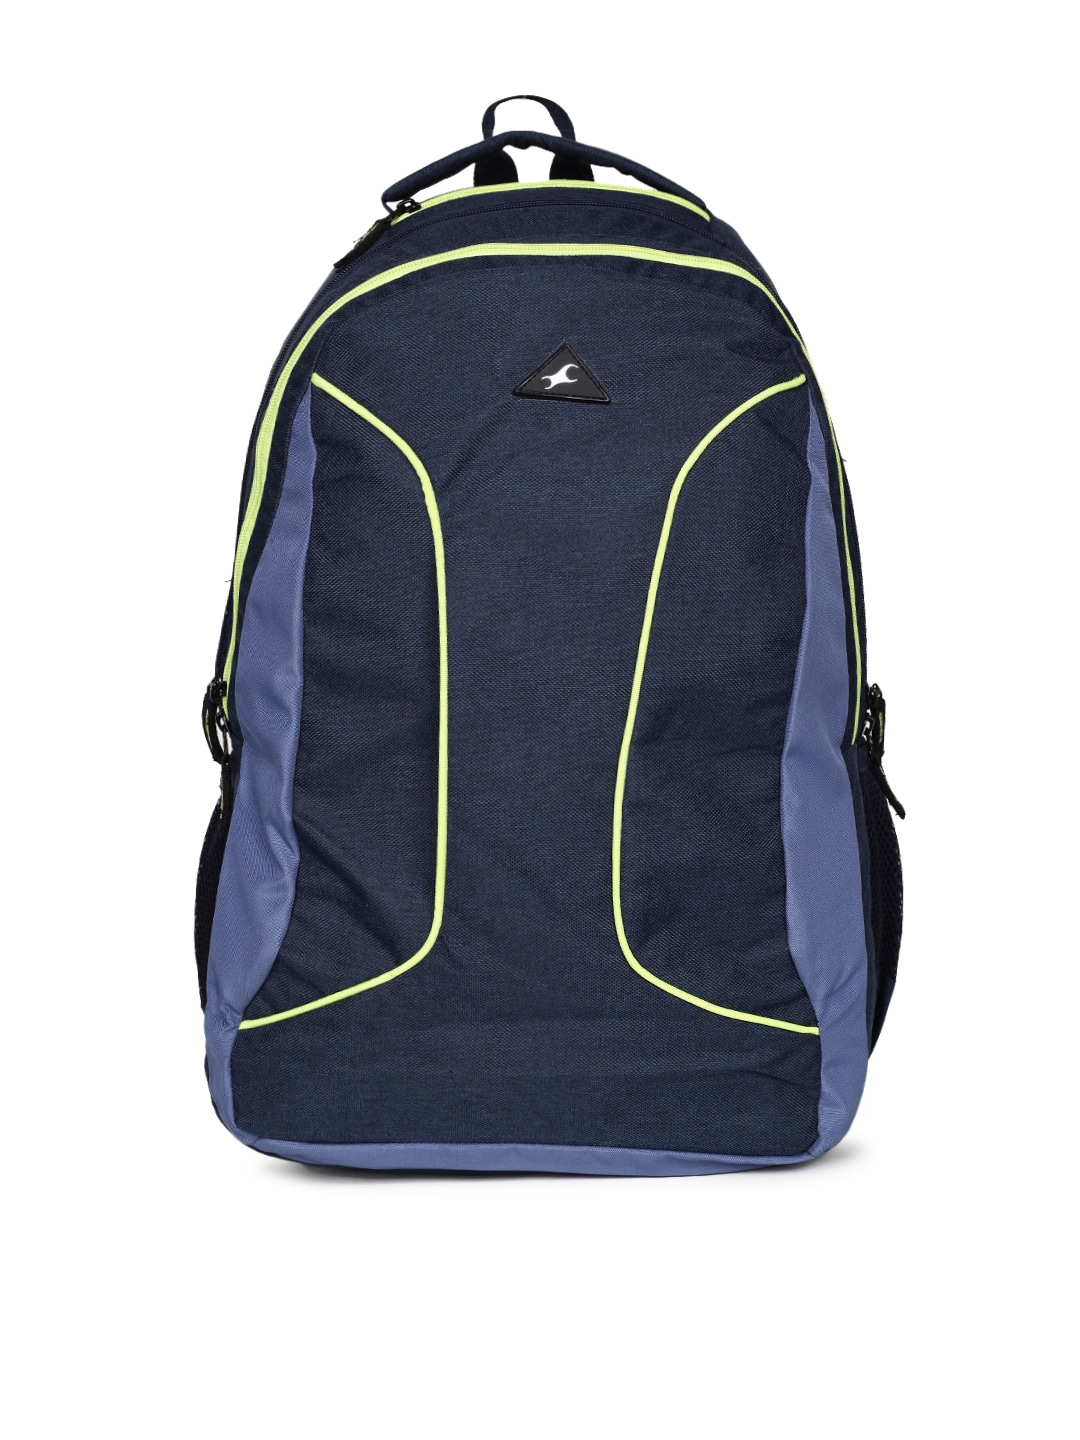 2025ba6867 Fastrack Bags - Buy Fastrack Bags Online in India